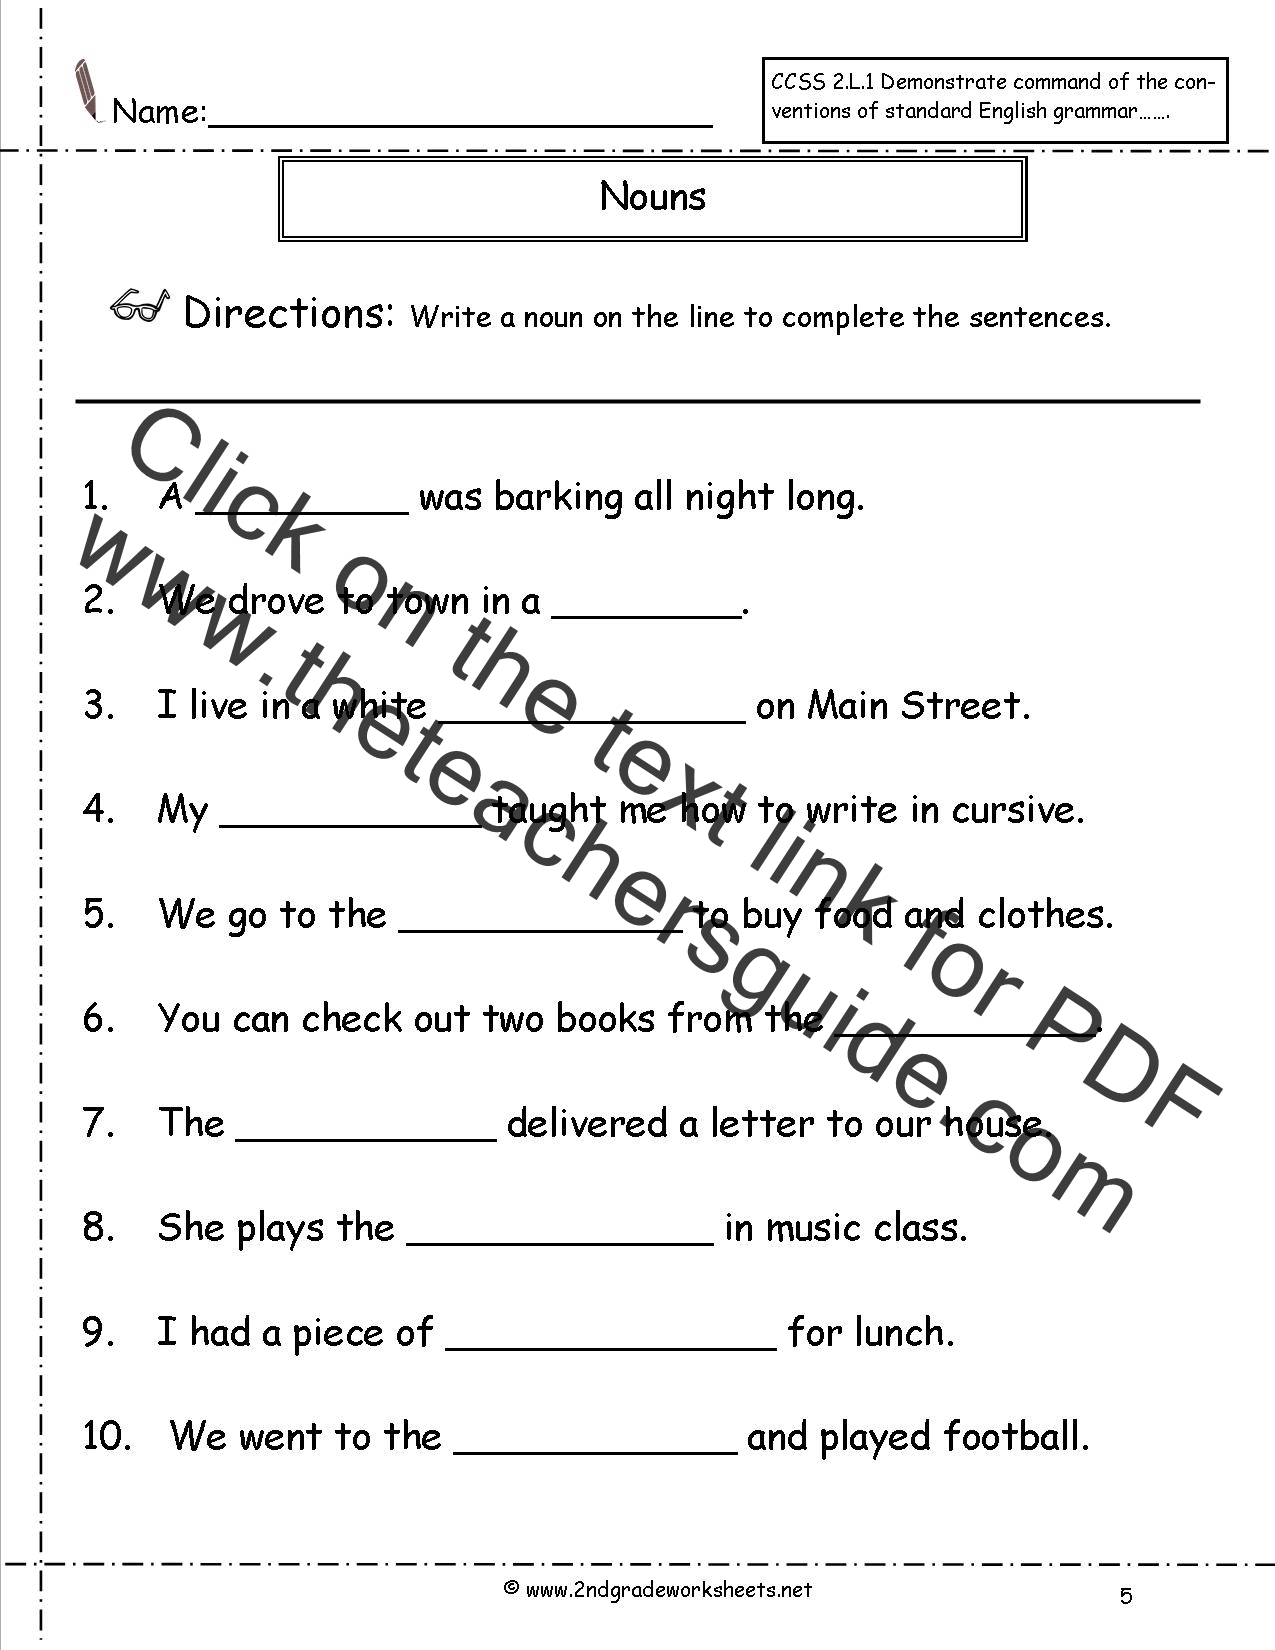 Nouns Worksheets and Printouts – Proper Noun Worksheets